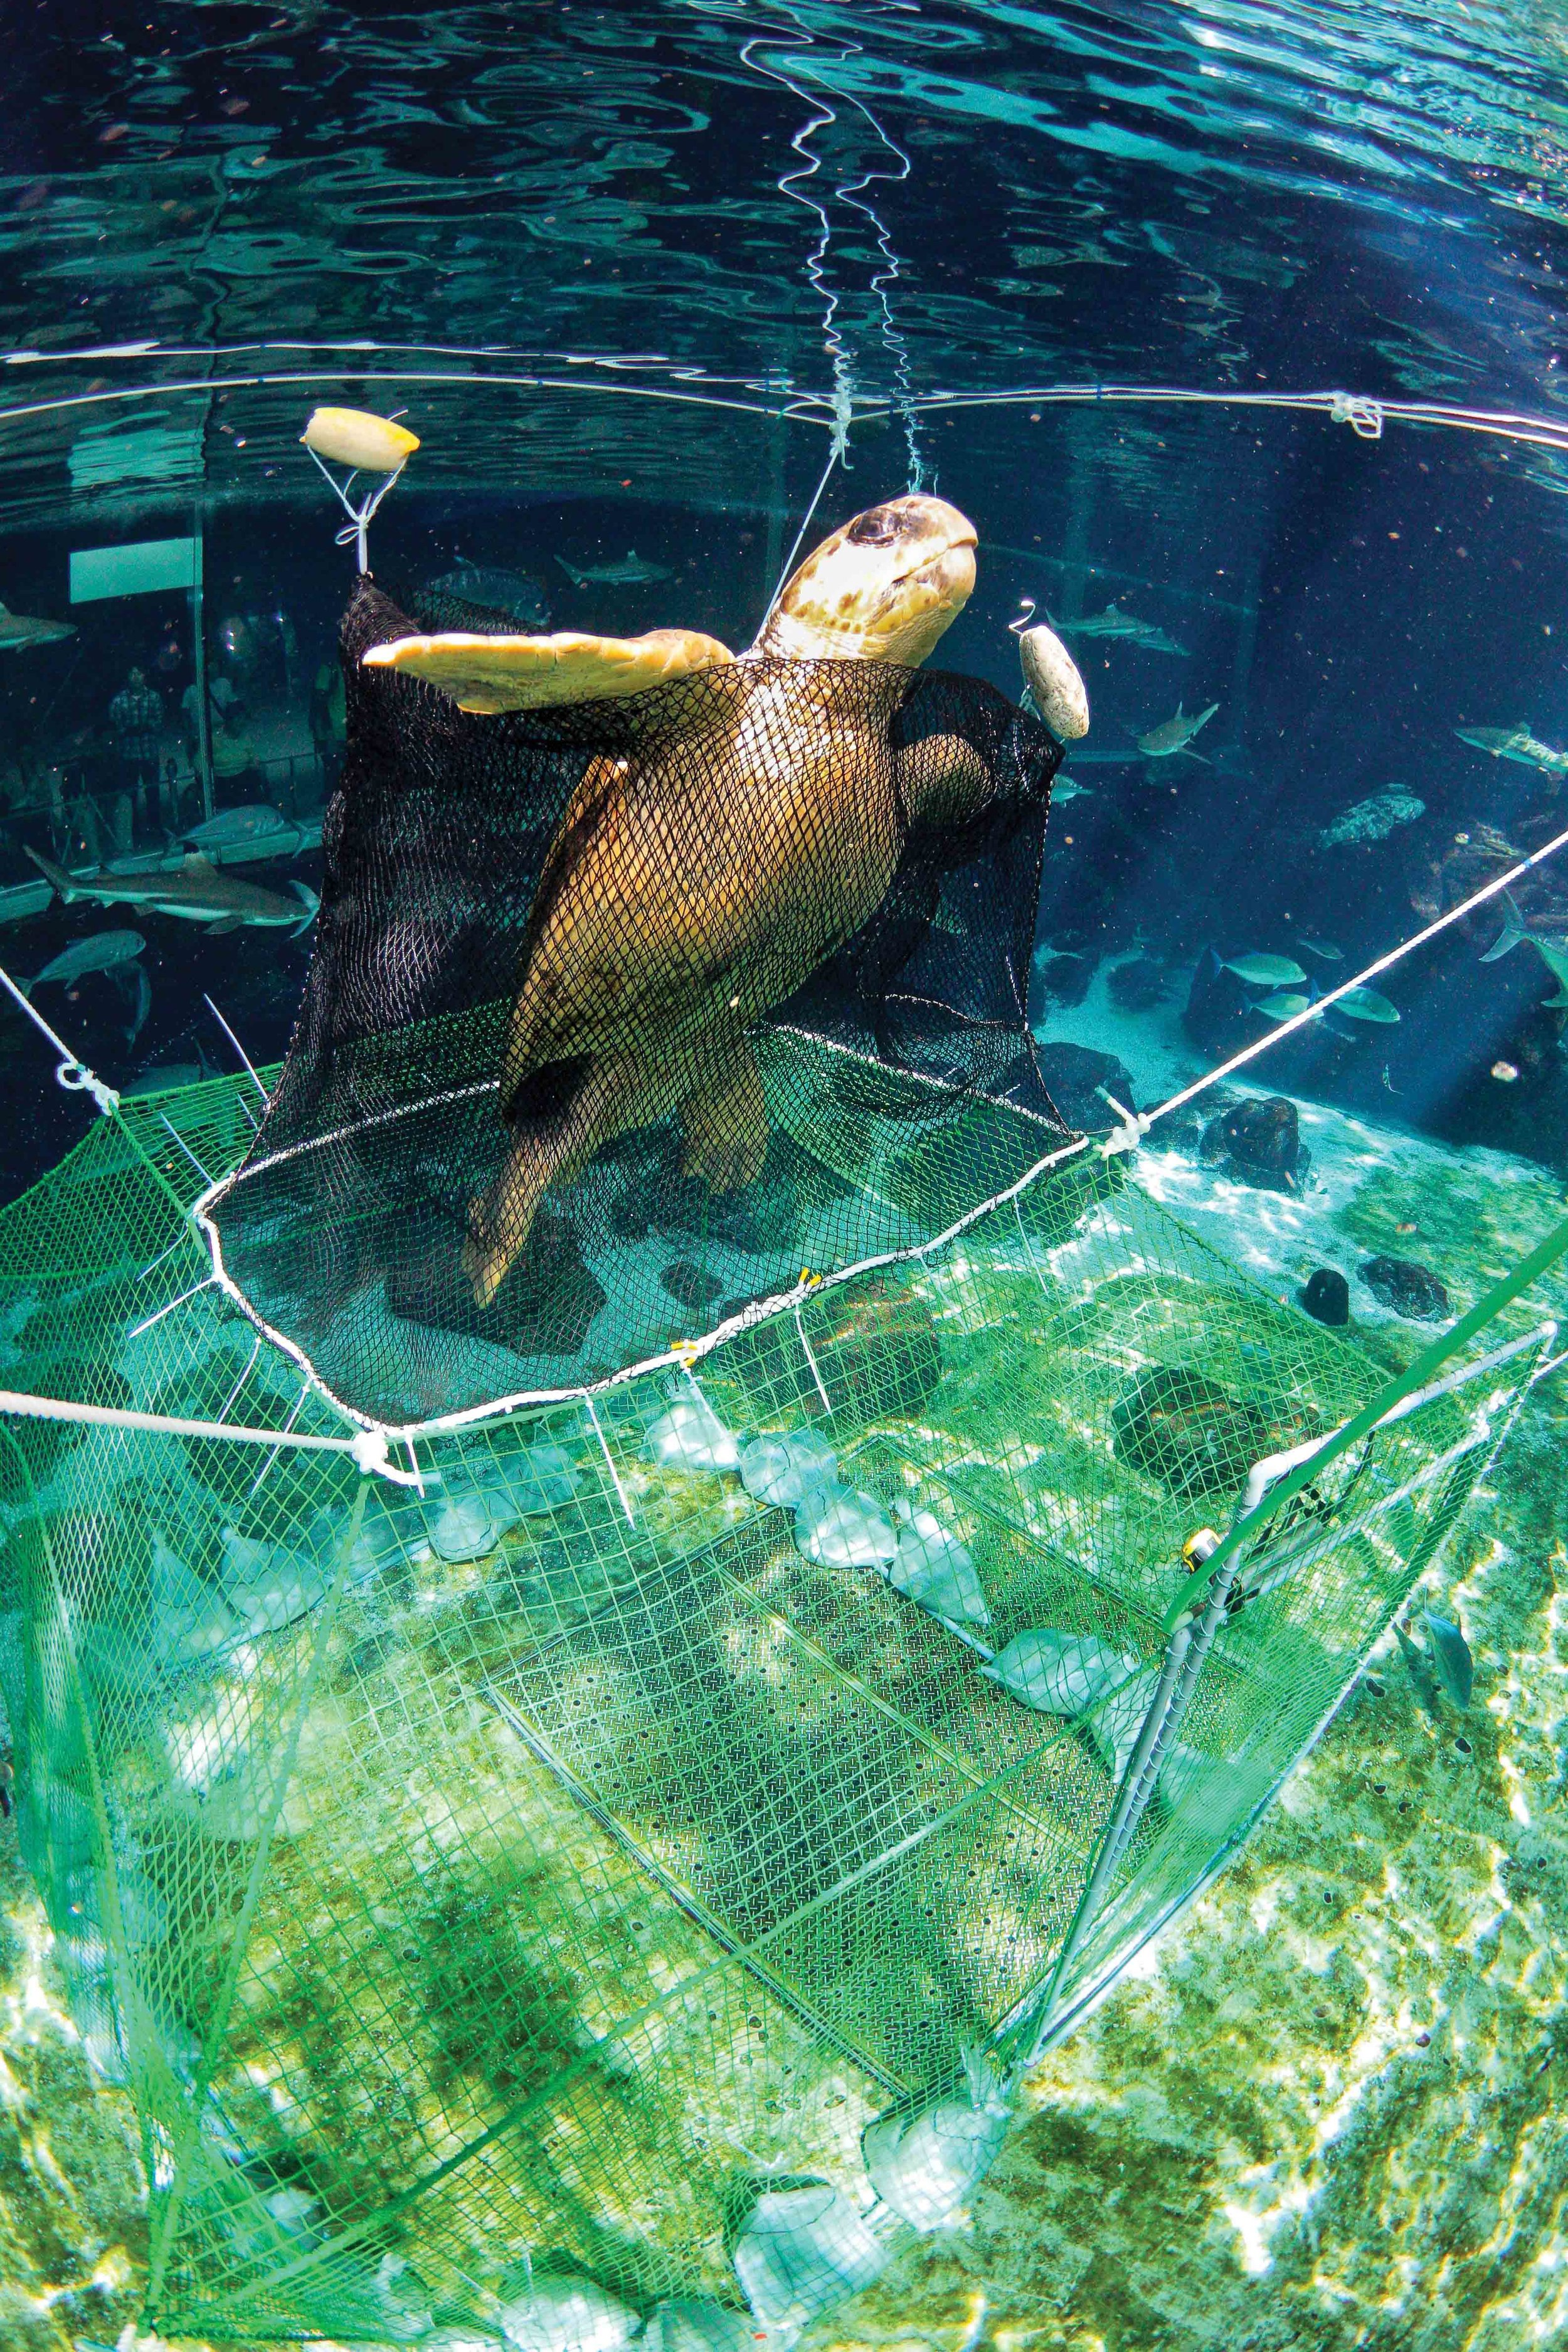 A loggerhead turtle successfully escapes a model pound net trap through a prototype PED inside the exhibition tank of Suma Aqualife Park in Kobe, Japan. During experimental trials, several PED designs that ensured both turtle escape and target fish retention were developed. Field trials are planned for 2012–2013. Photo: The Yomiuri Shimbun